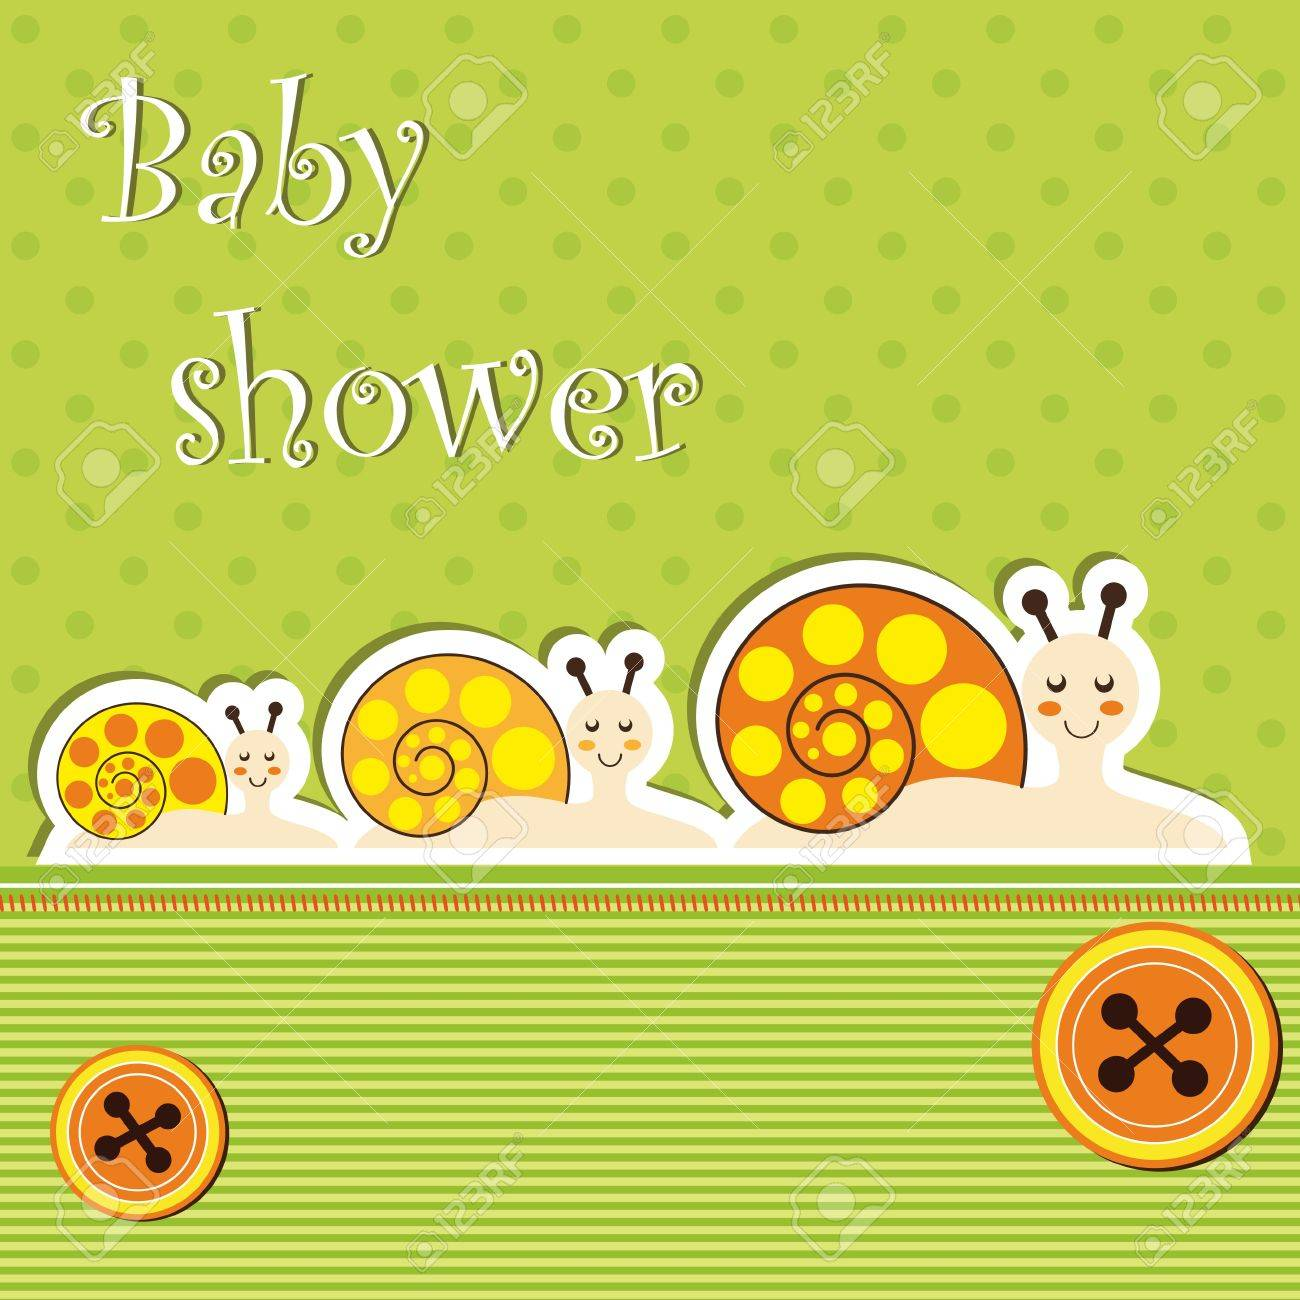 Baby shower card Stock Vector - 12485781